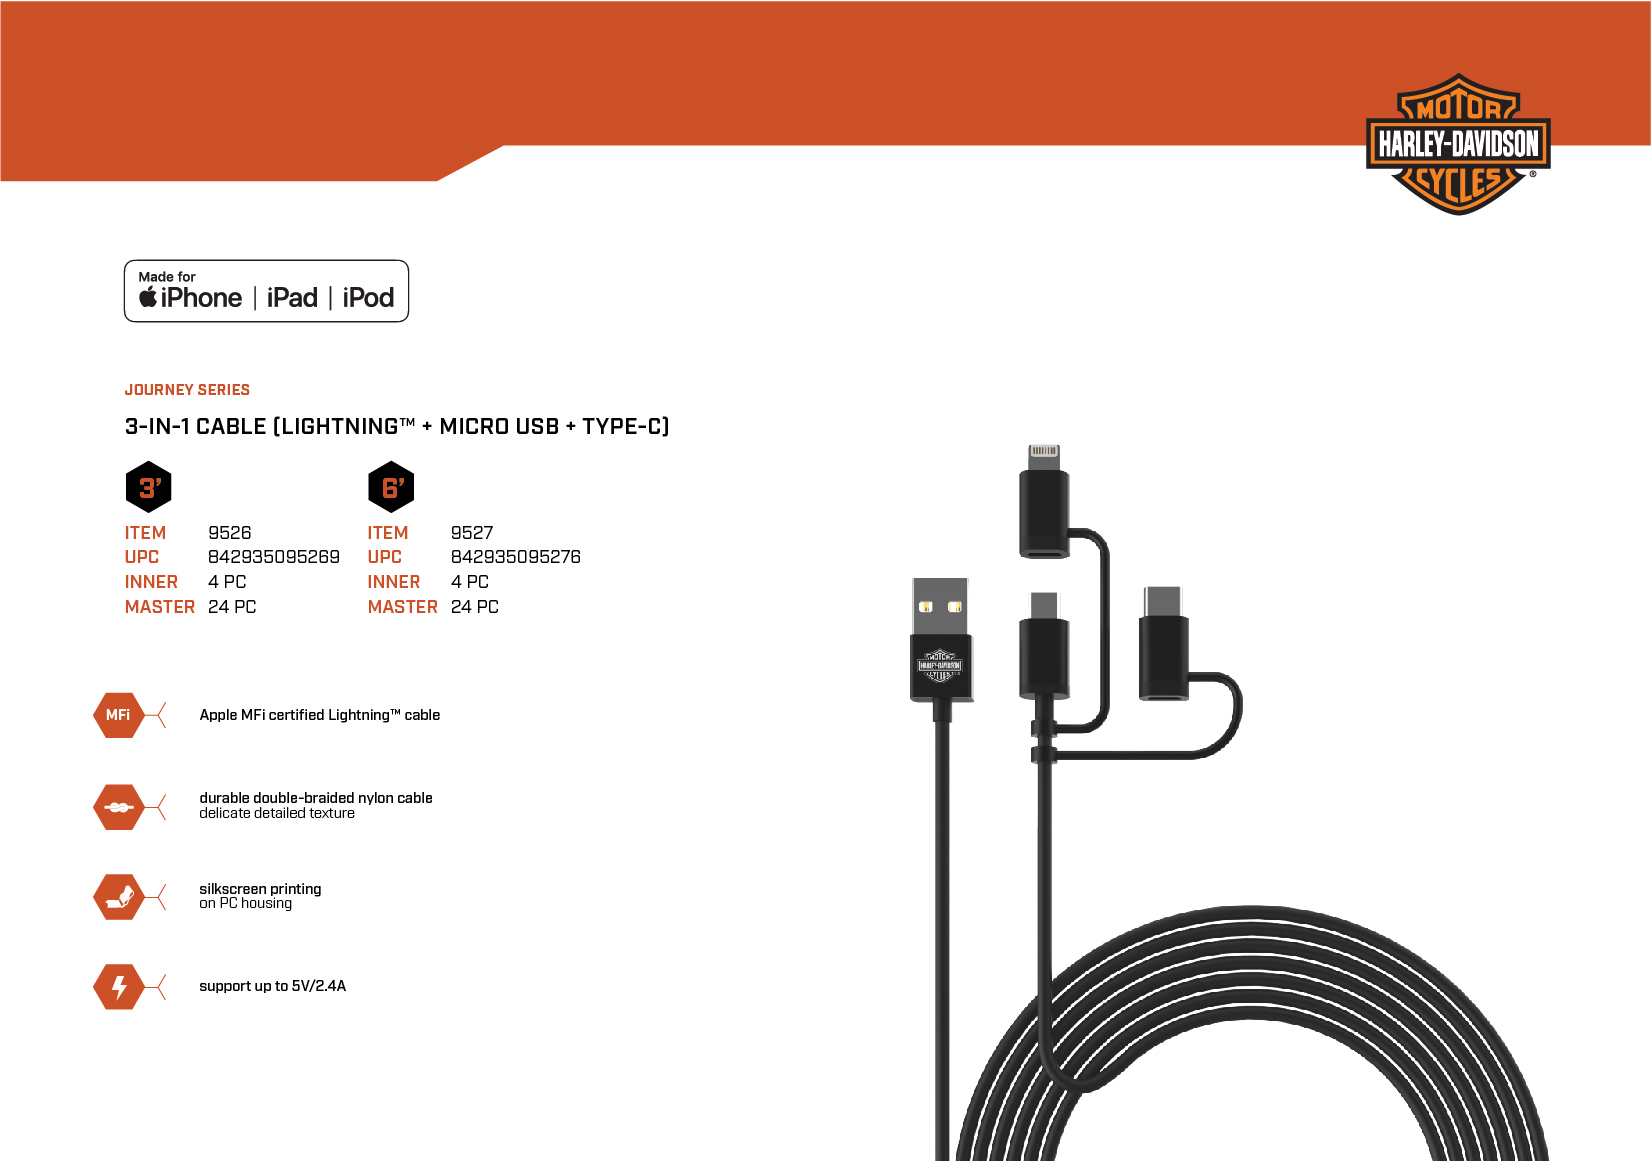 9526-9527_3-in-1 Cable cropped.jpg